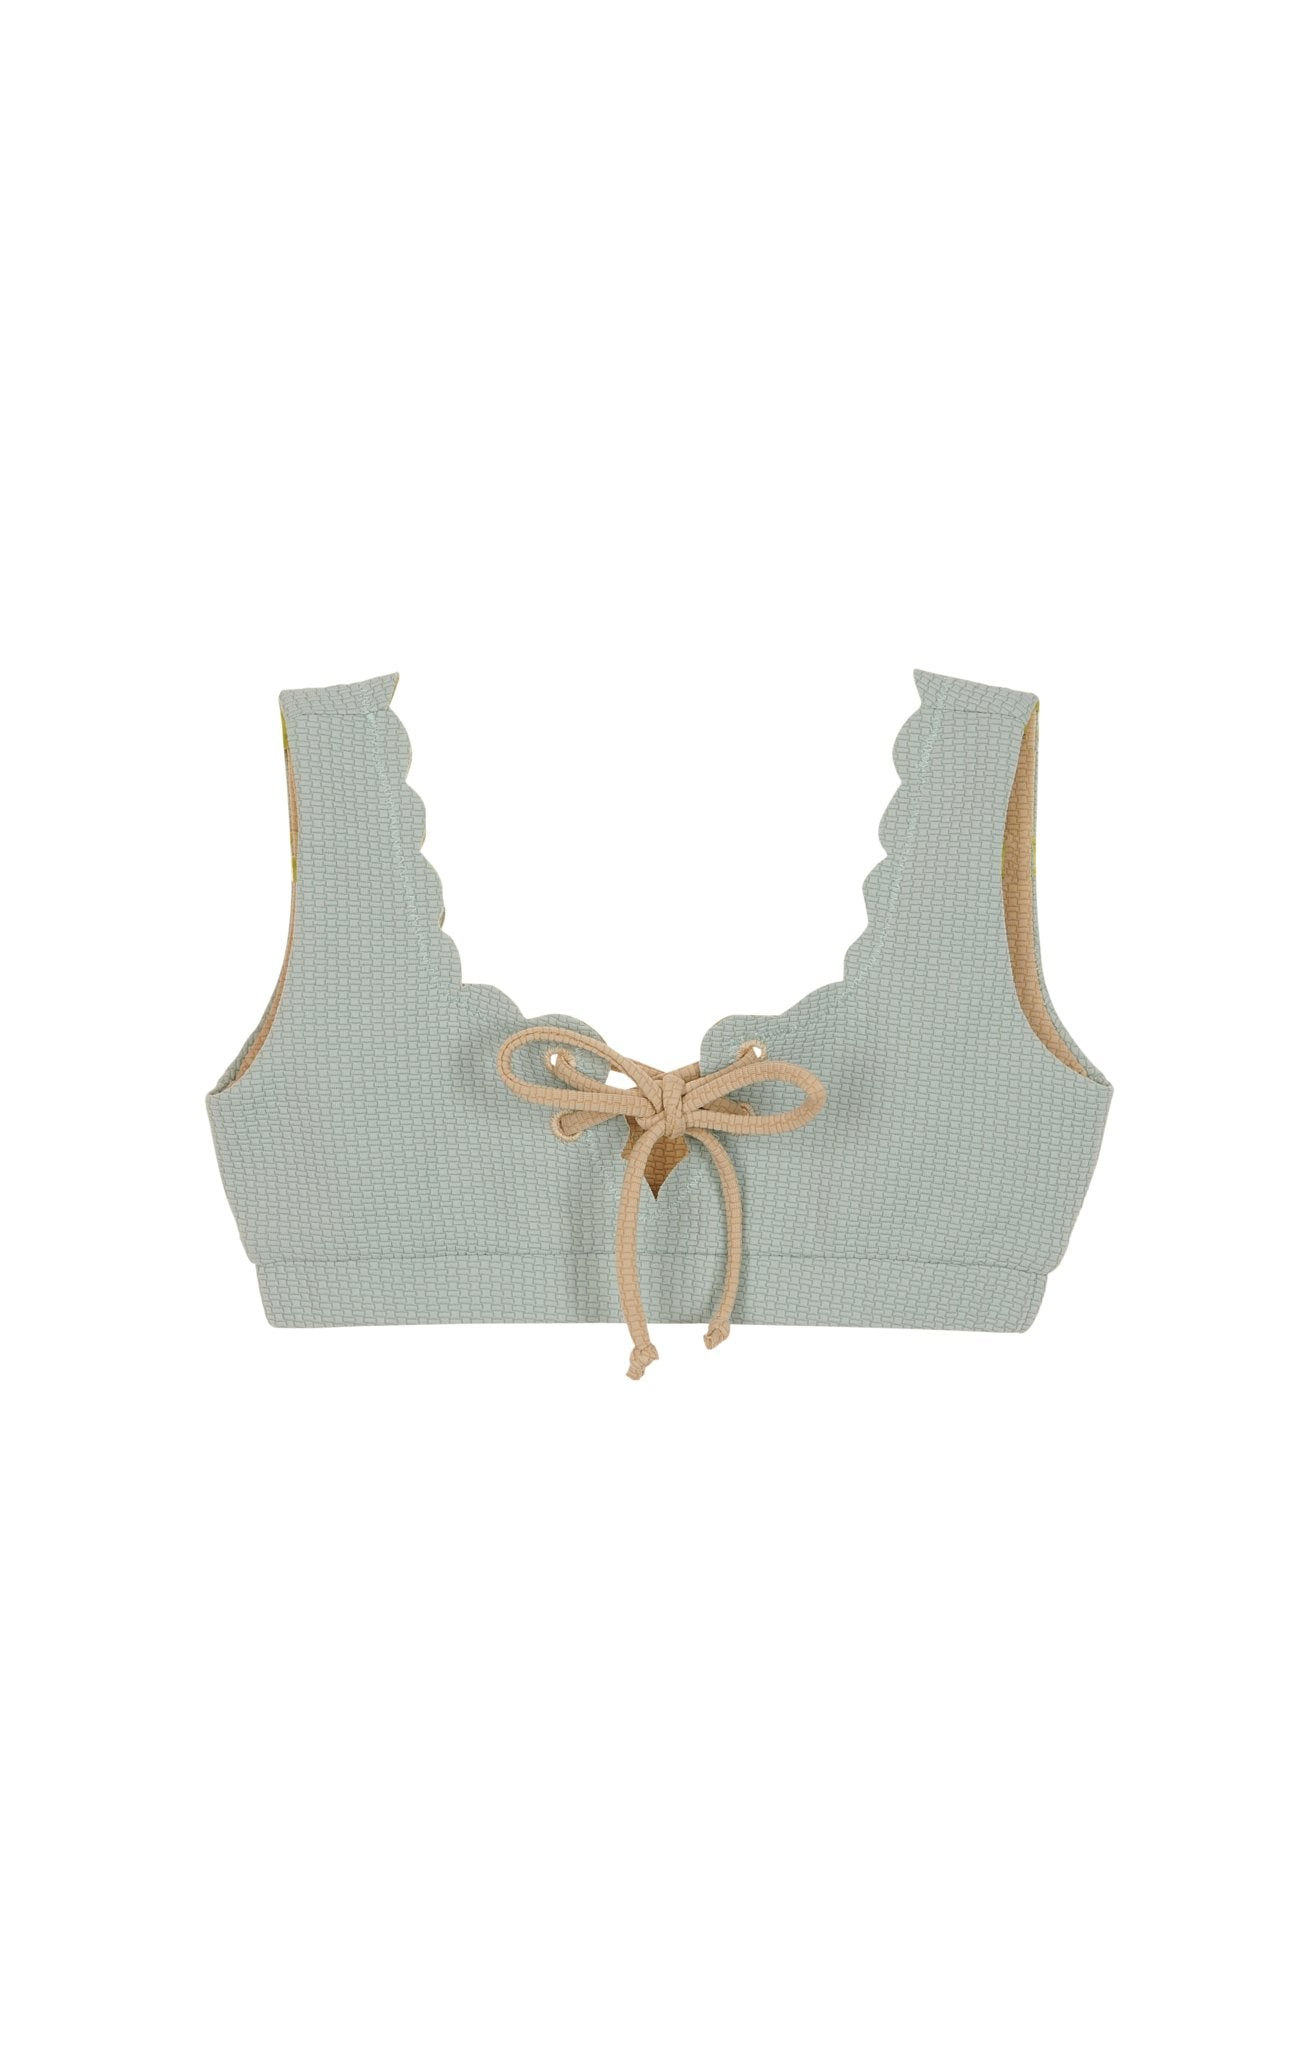 Bumby Palm Springs Tie Top in Aqua Grey